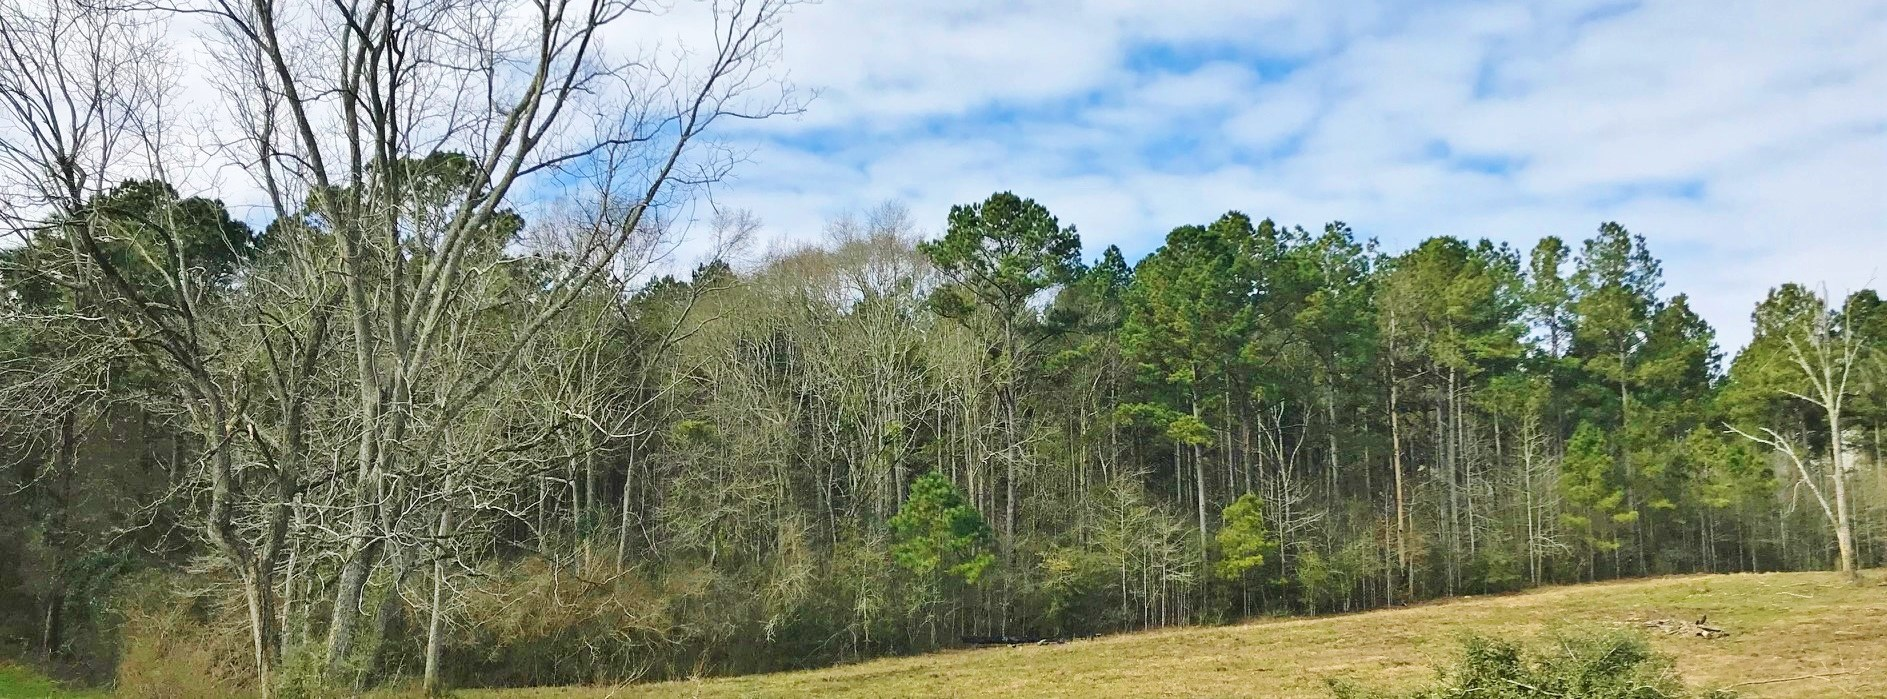 78 Acres Timberland Investment Property for Sale Seminary MS